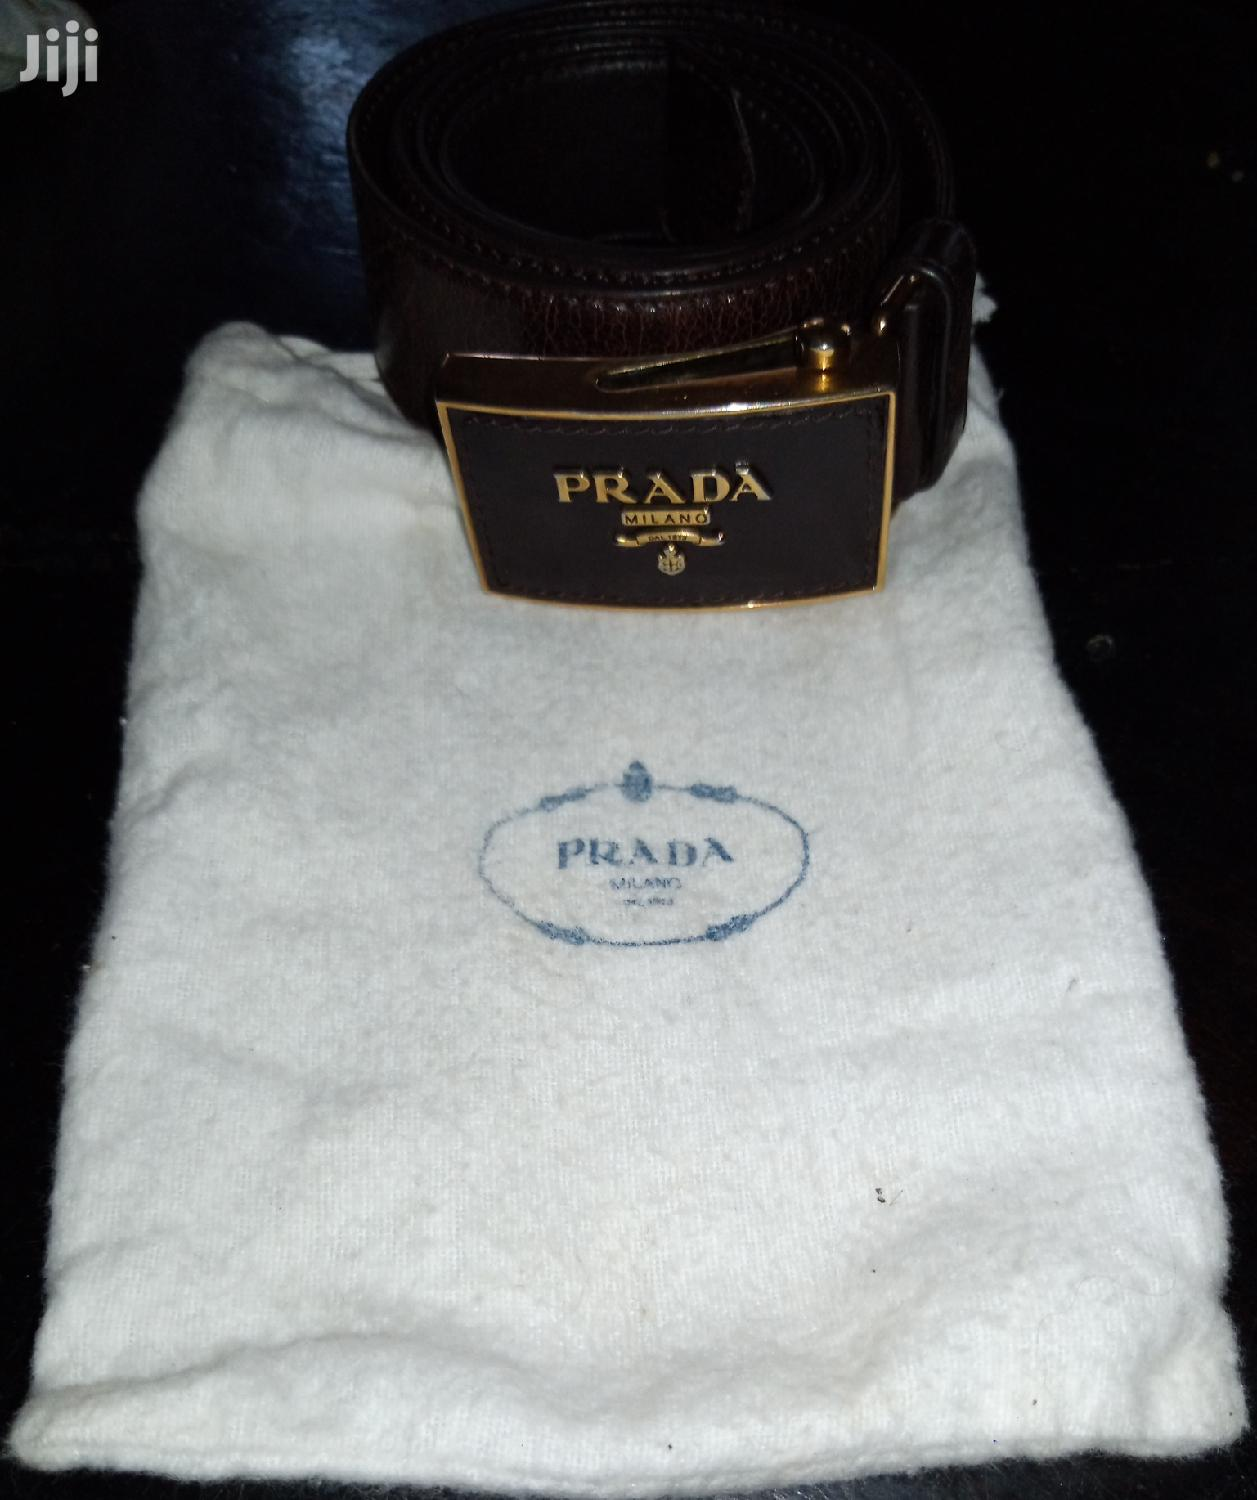 Prada Milano Adjustable Belt | Clothing Accessories for sale in Kampala, Central Region, Uganda